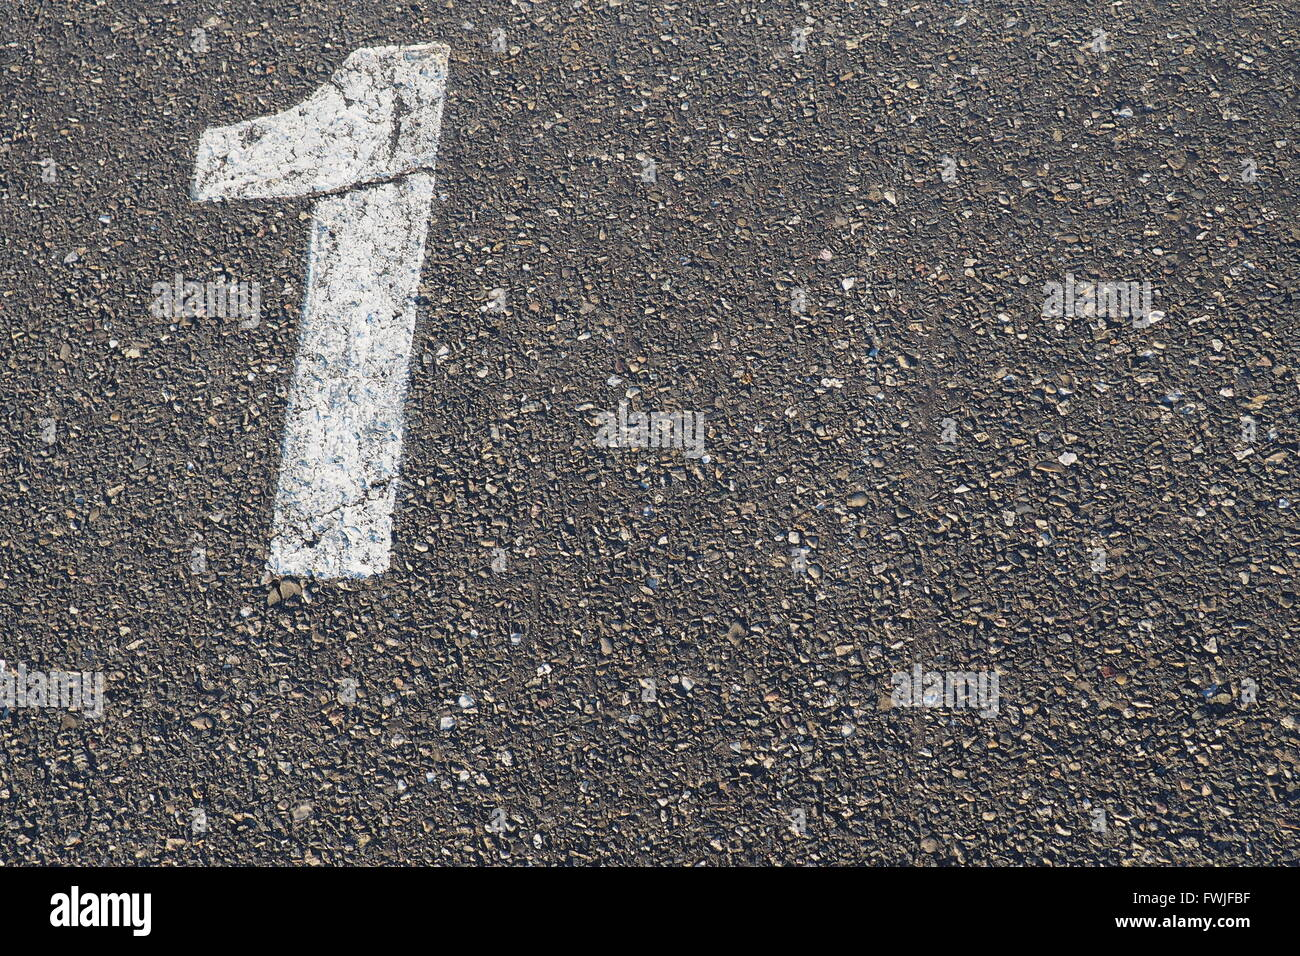 High Angle View Of Number 1 On Road - Stock Image